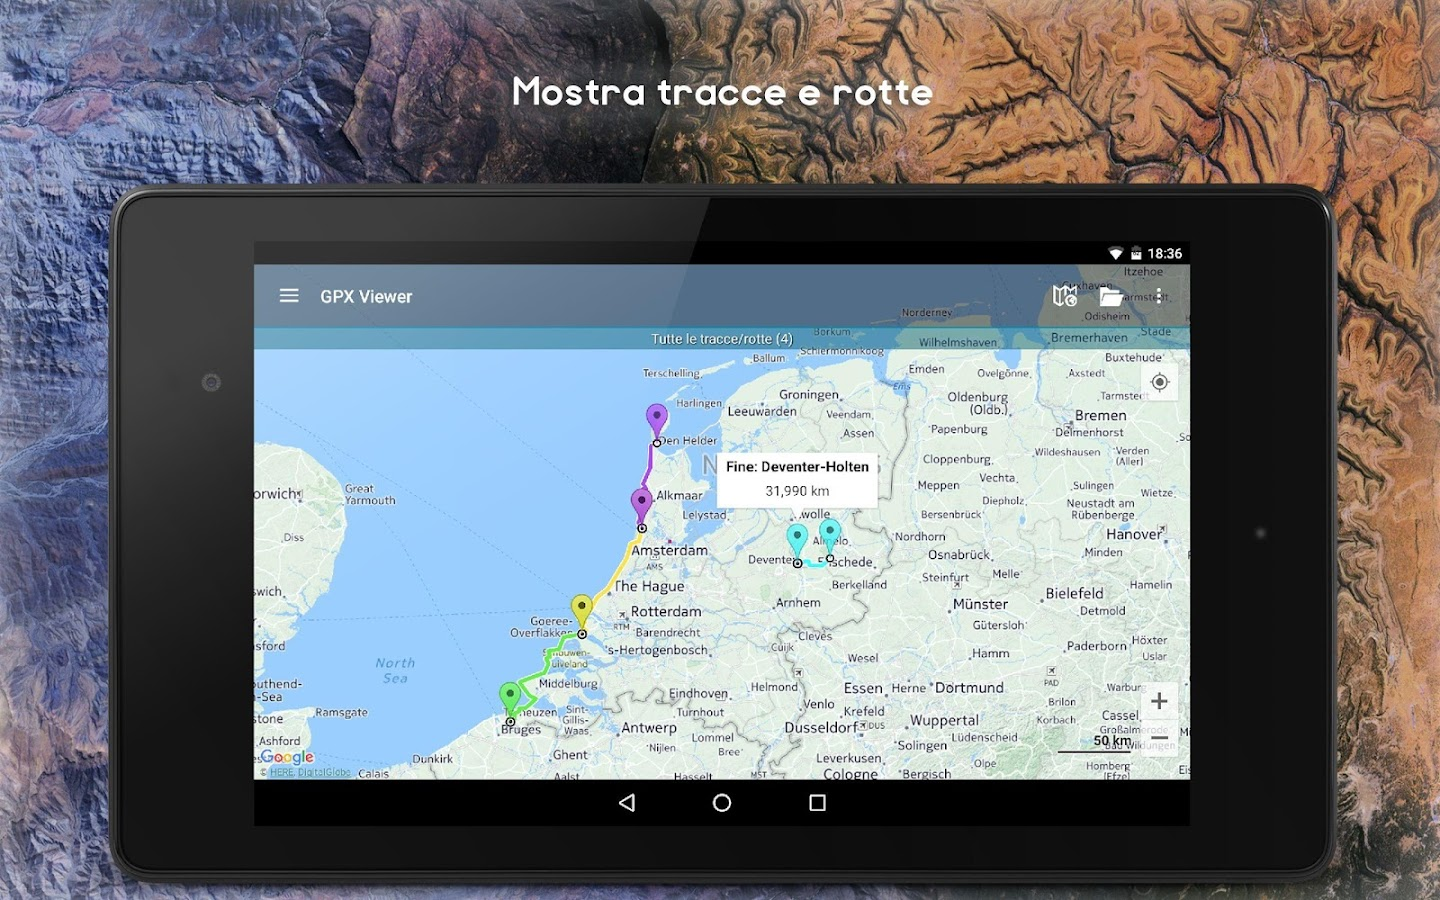 GPX Viewer - Tracce, Rotte e Waypoint- screenshot